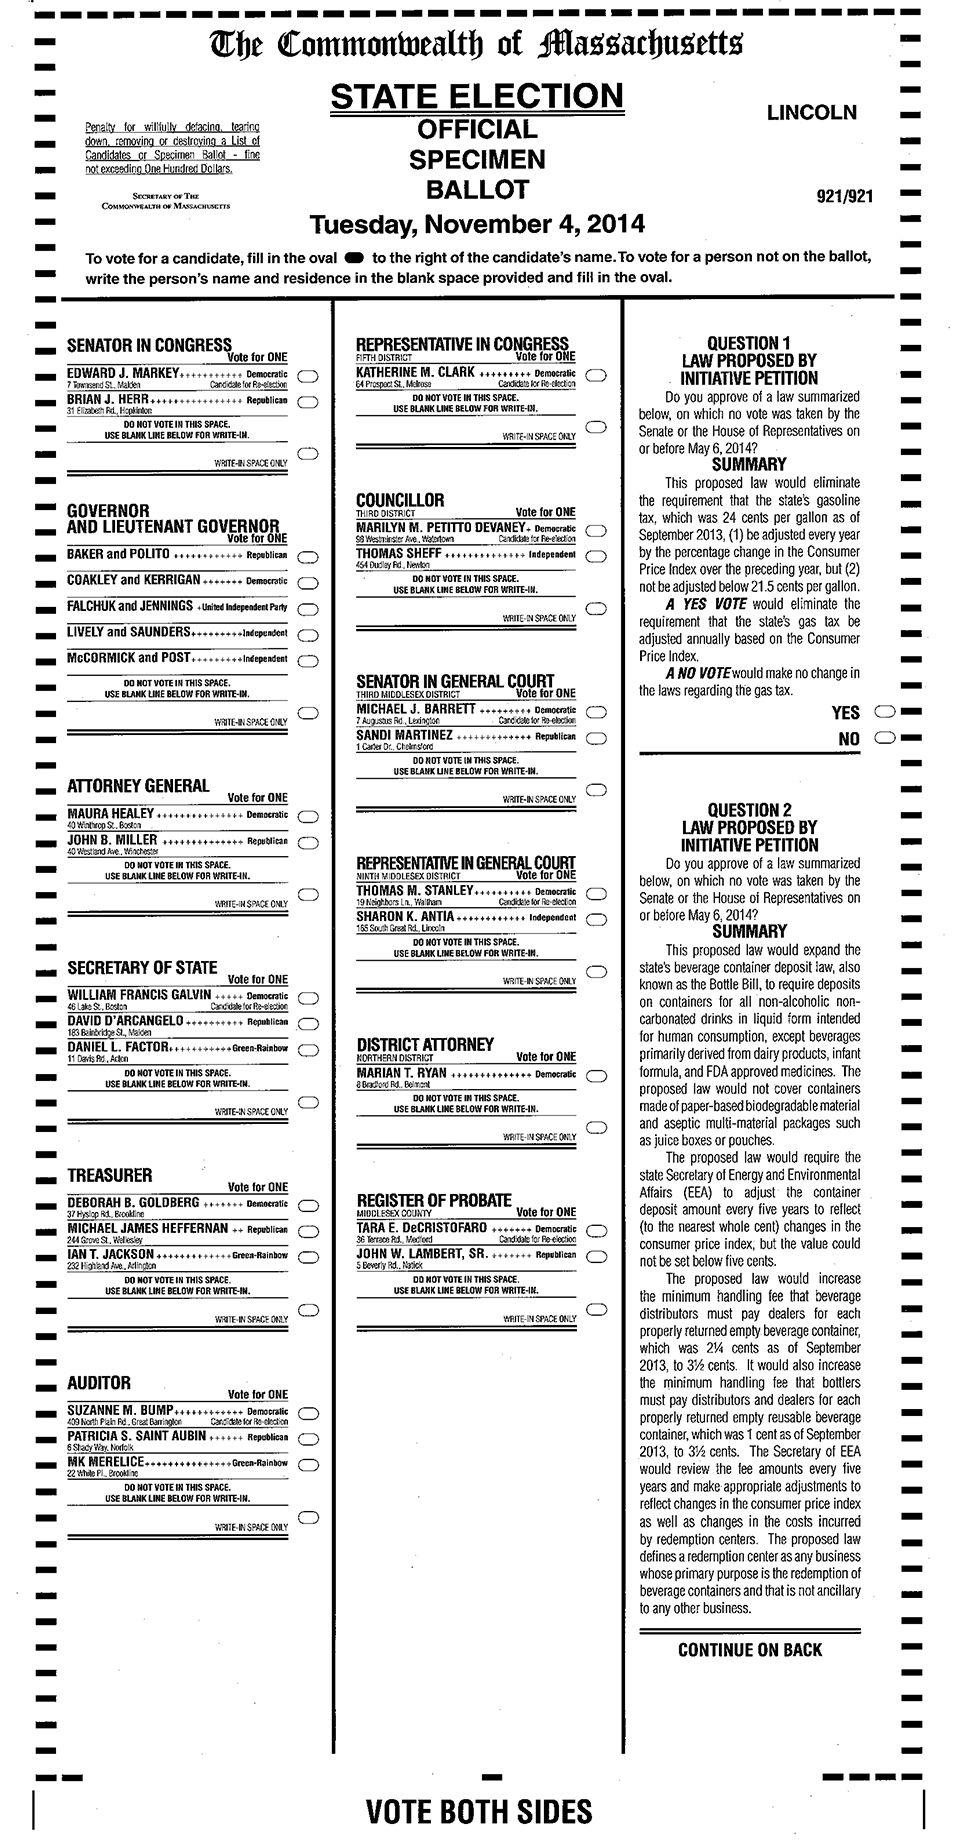 Sample ballot for November 4 election